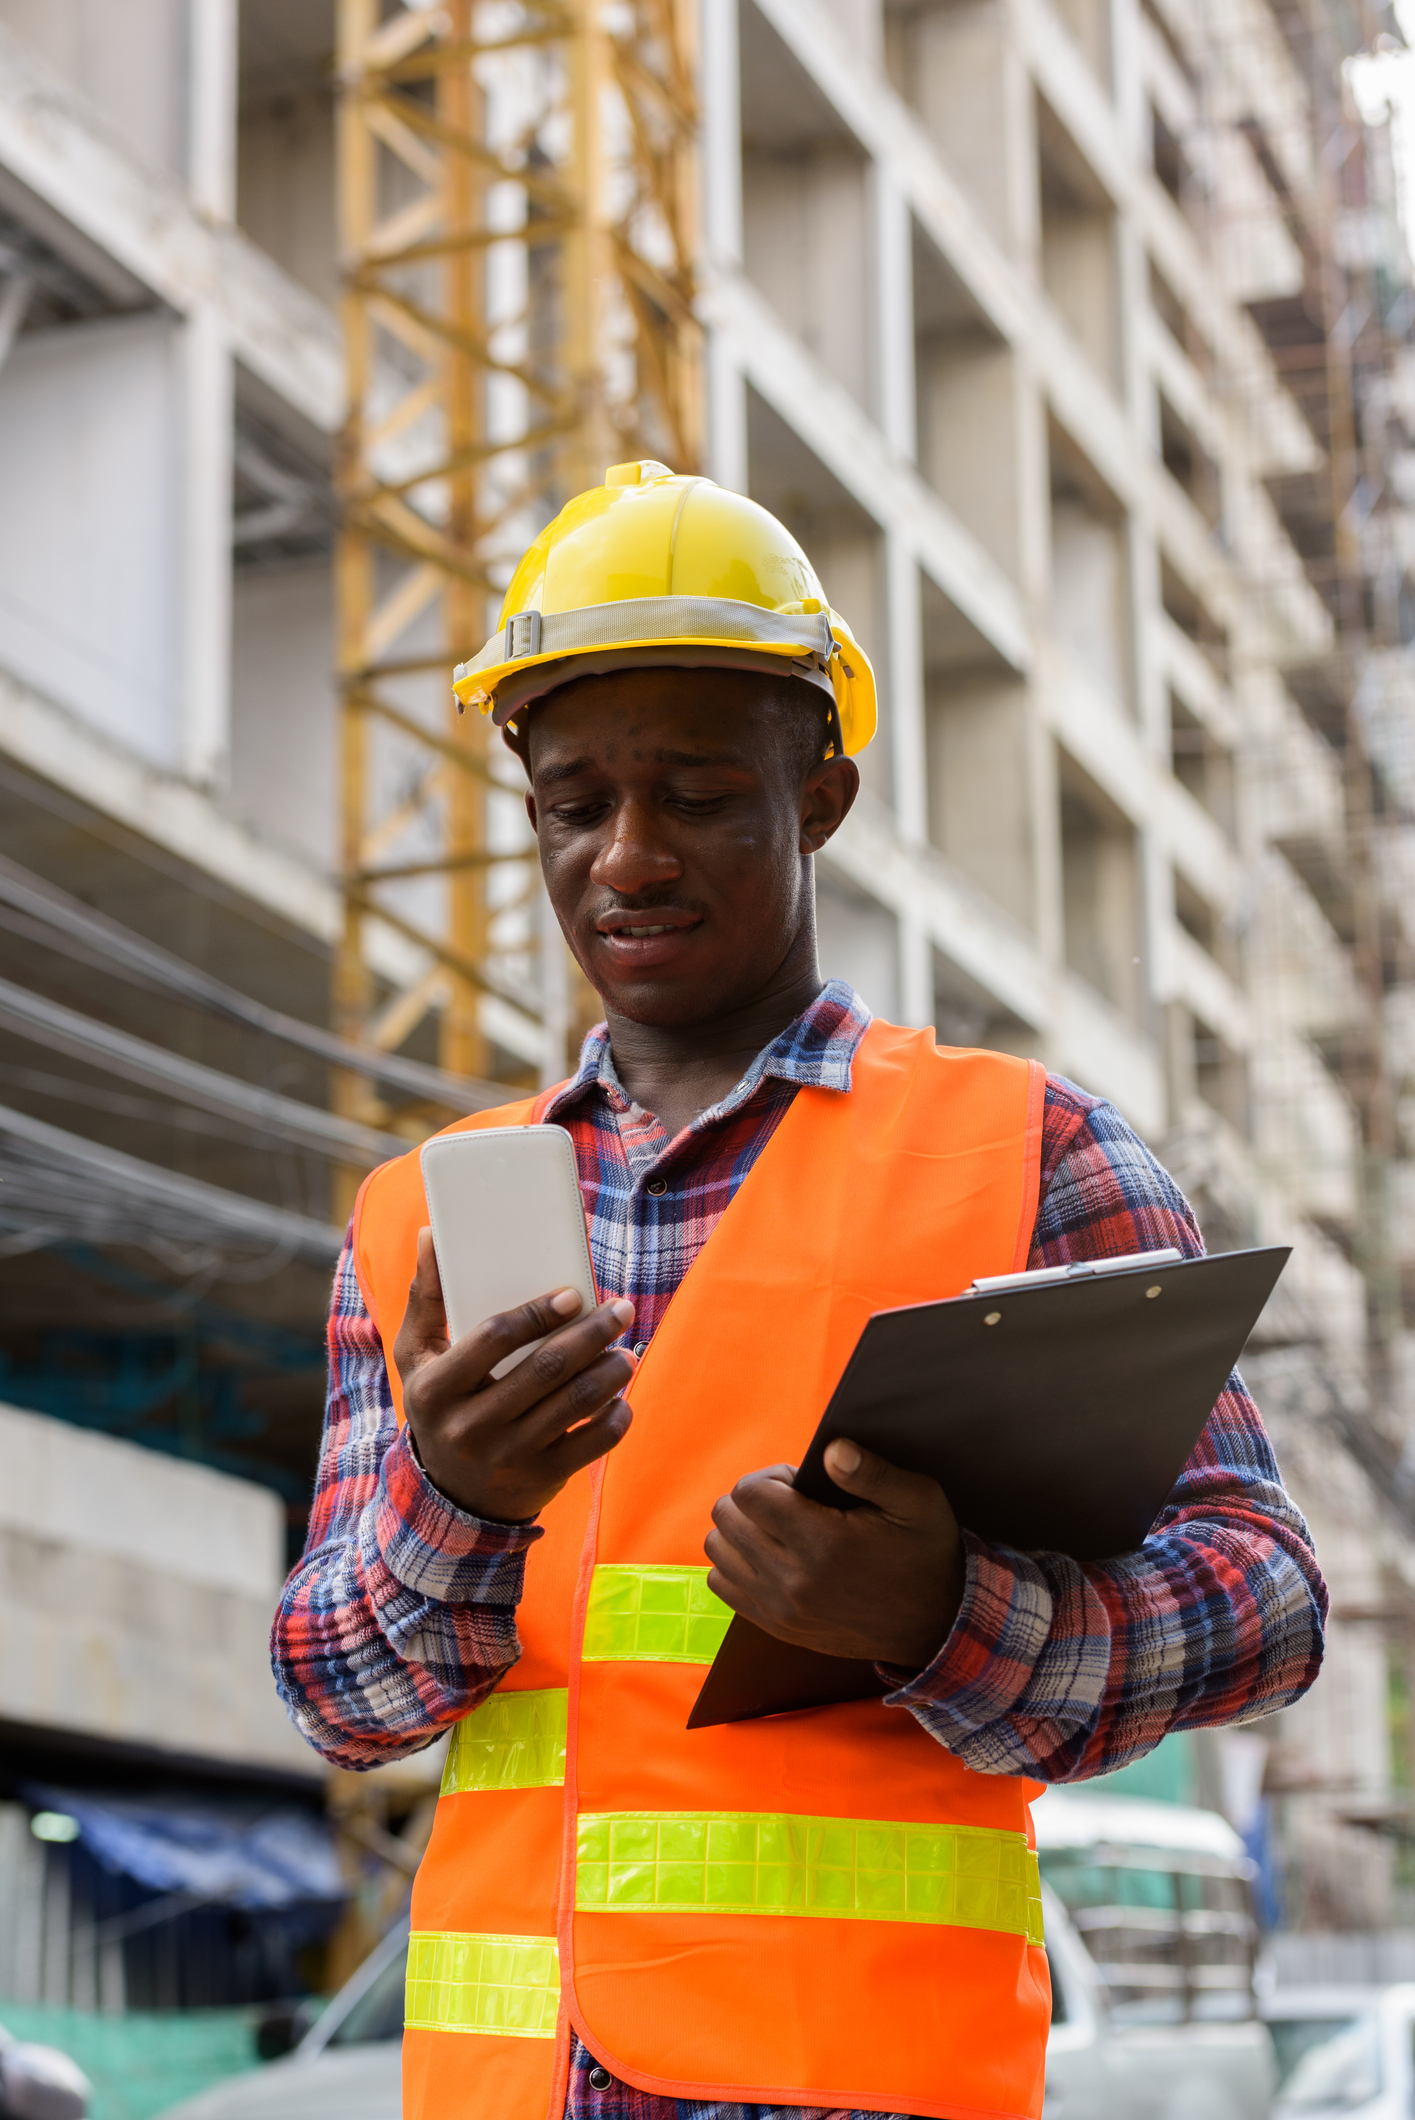 Read about the ways mobile apps can help solve the construction industry labor shortage.